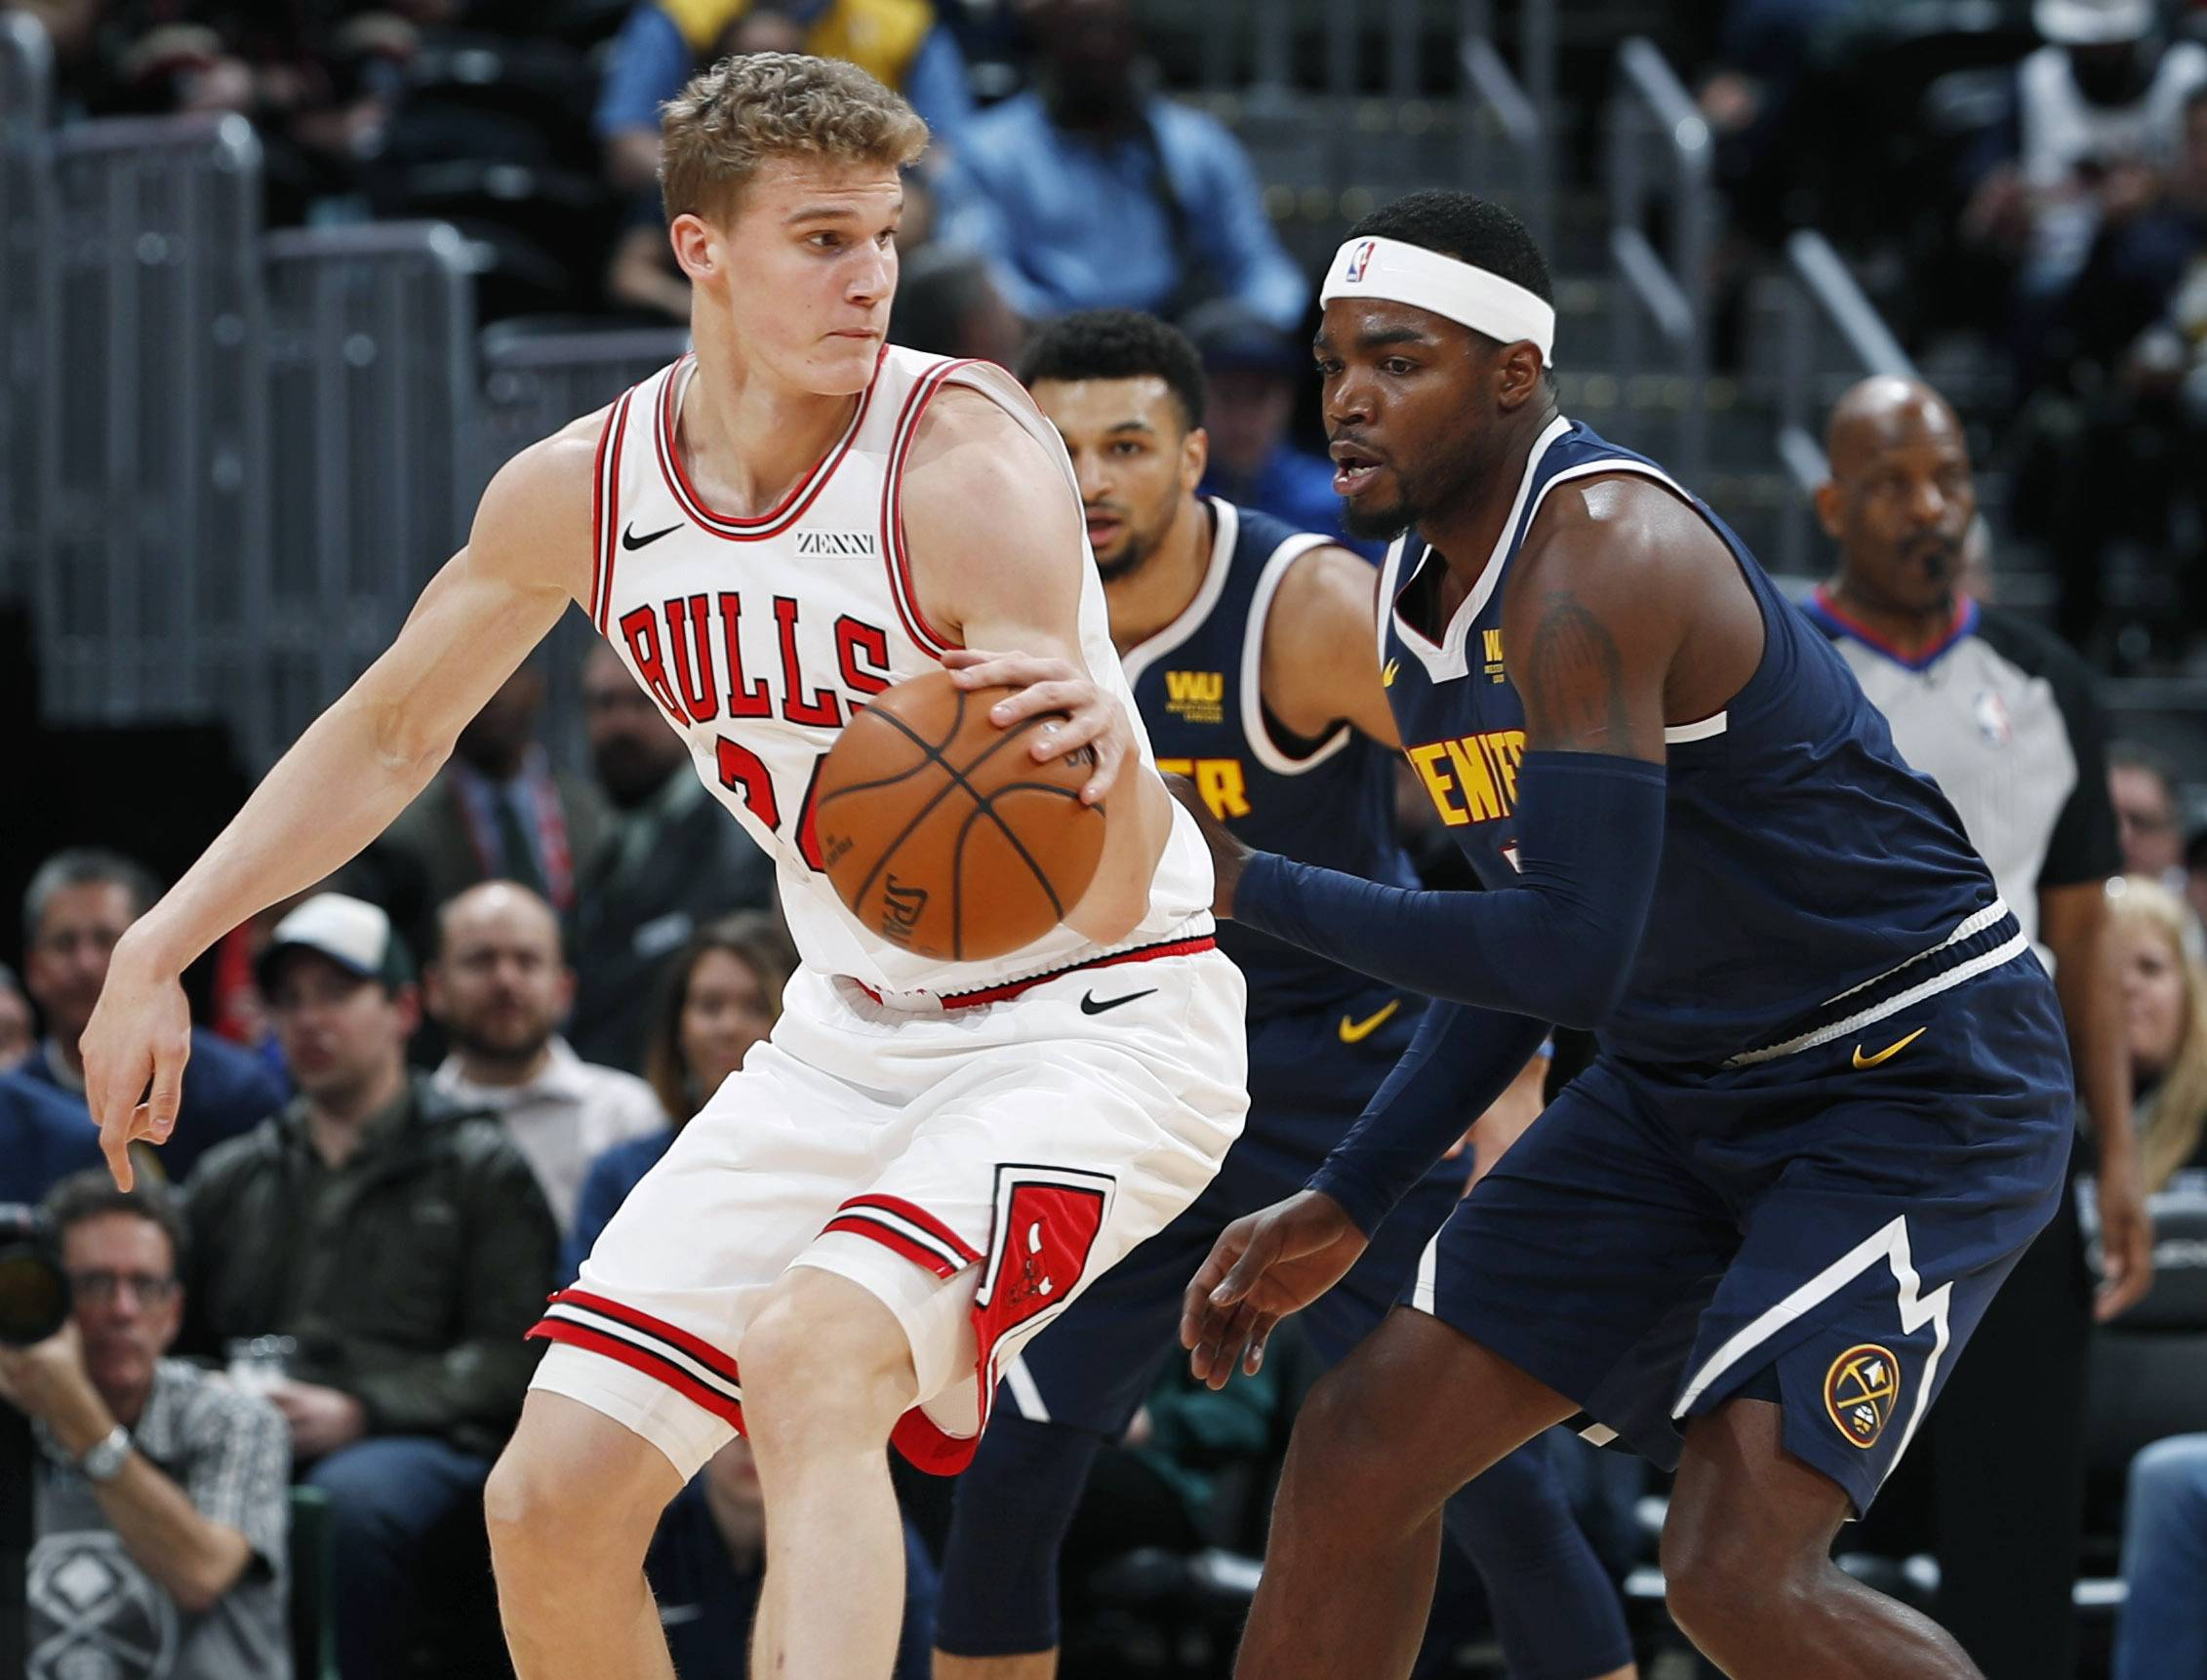 Losing streaks continue for Bulls in Denver